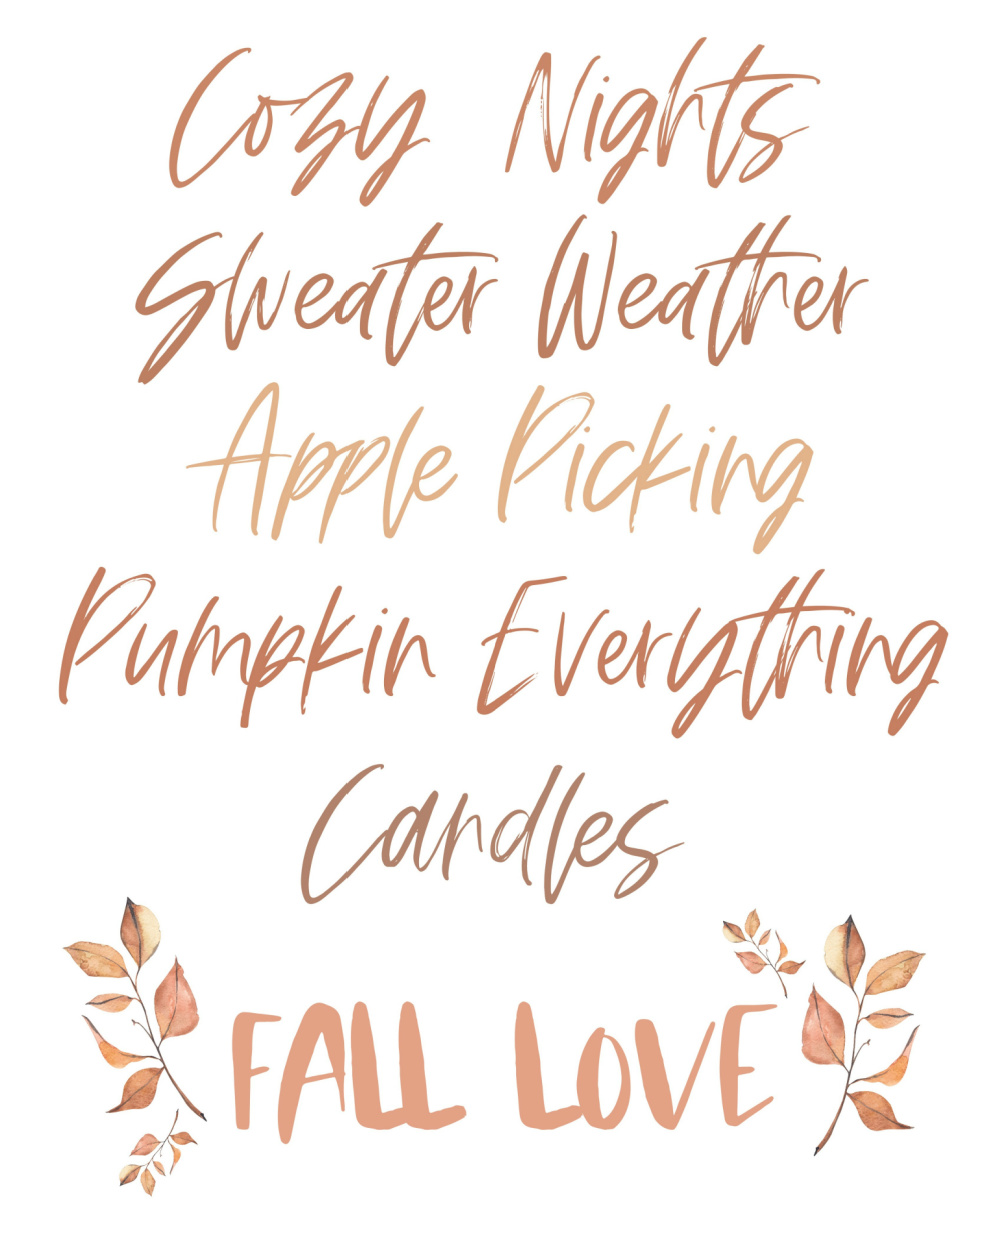 Cozy nights, sweater weather, apple picking, pumpkin everything, candles - Fall Love.